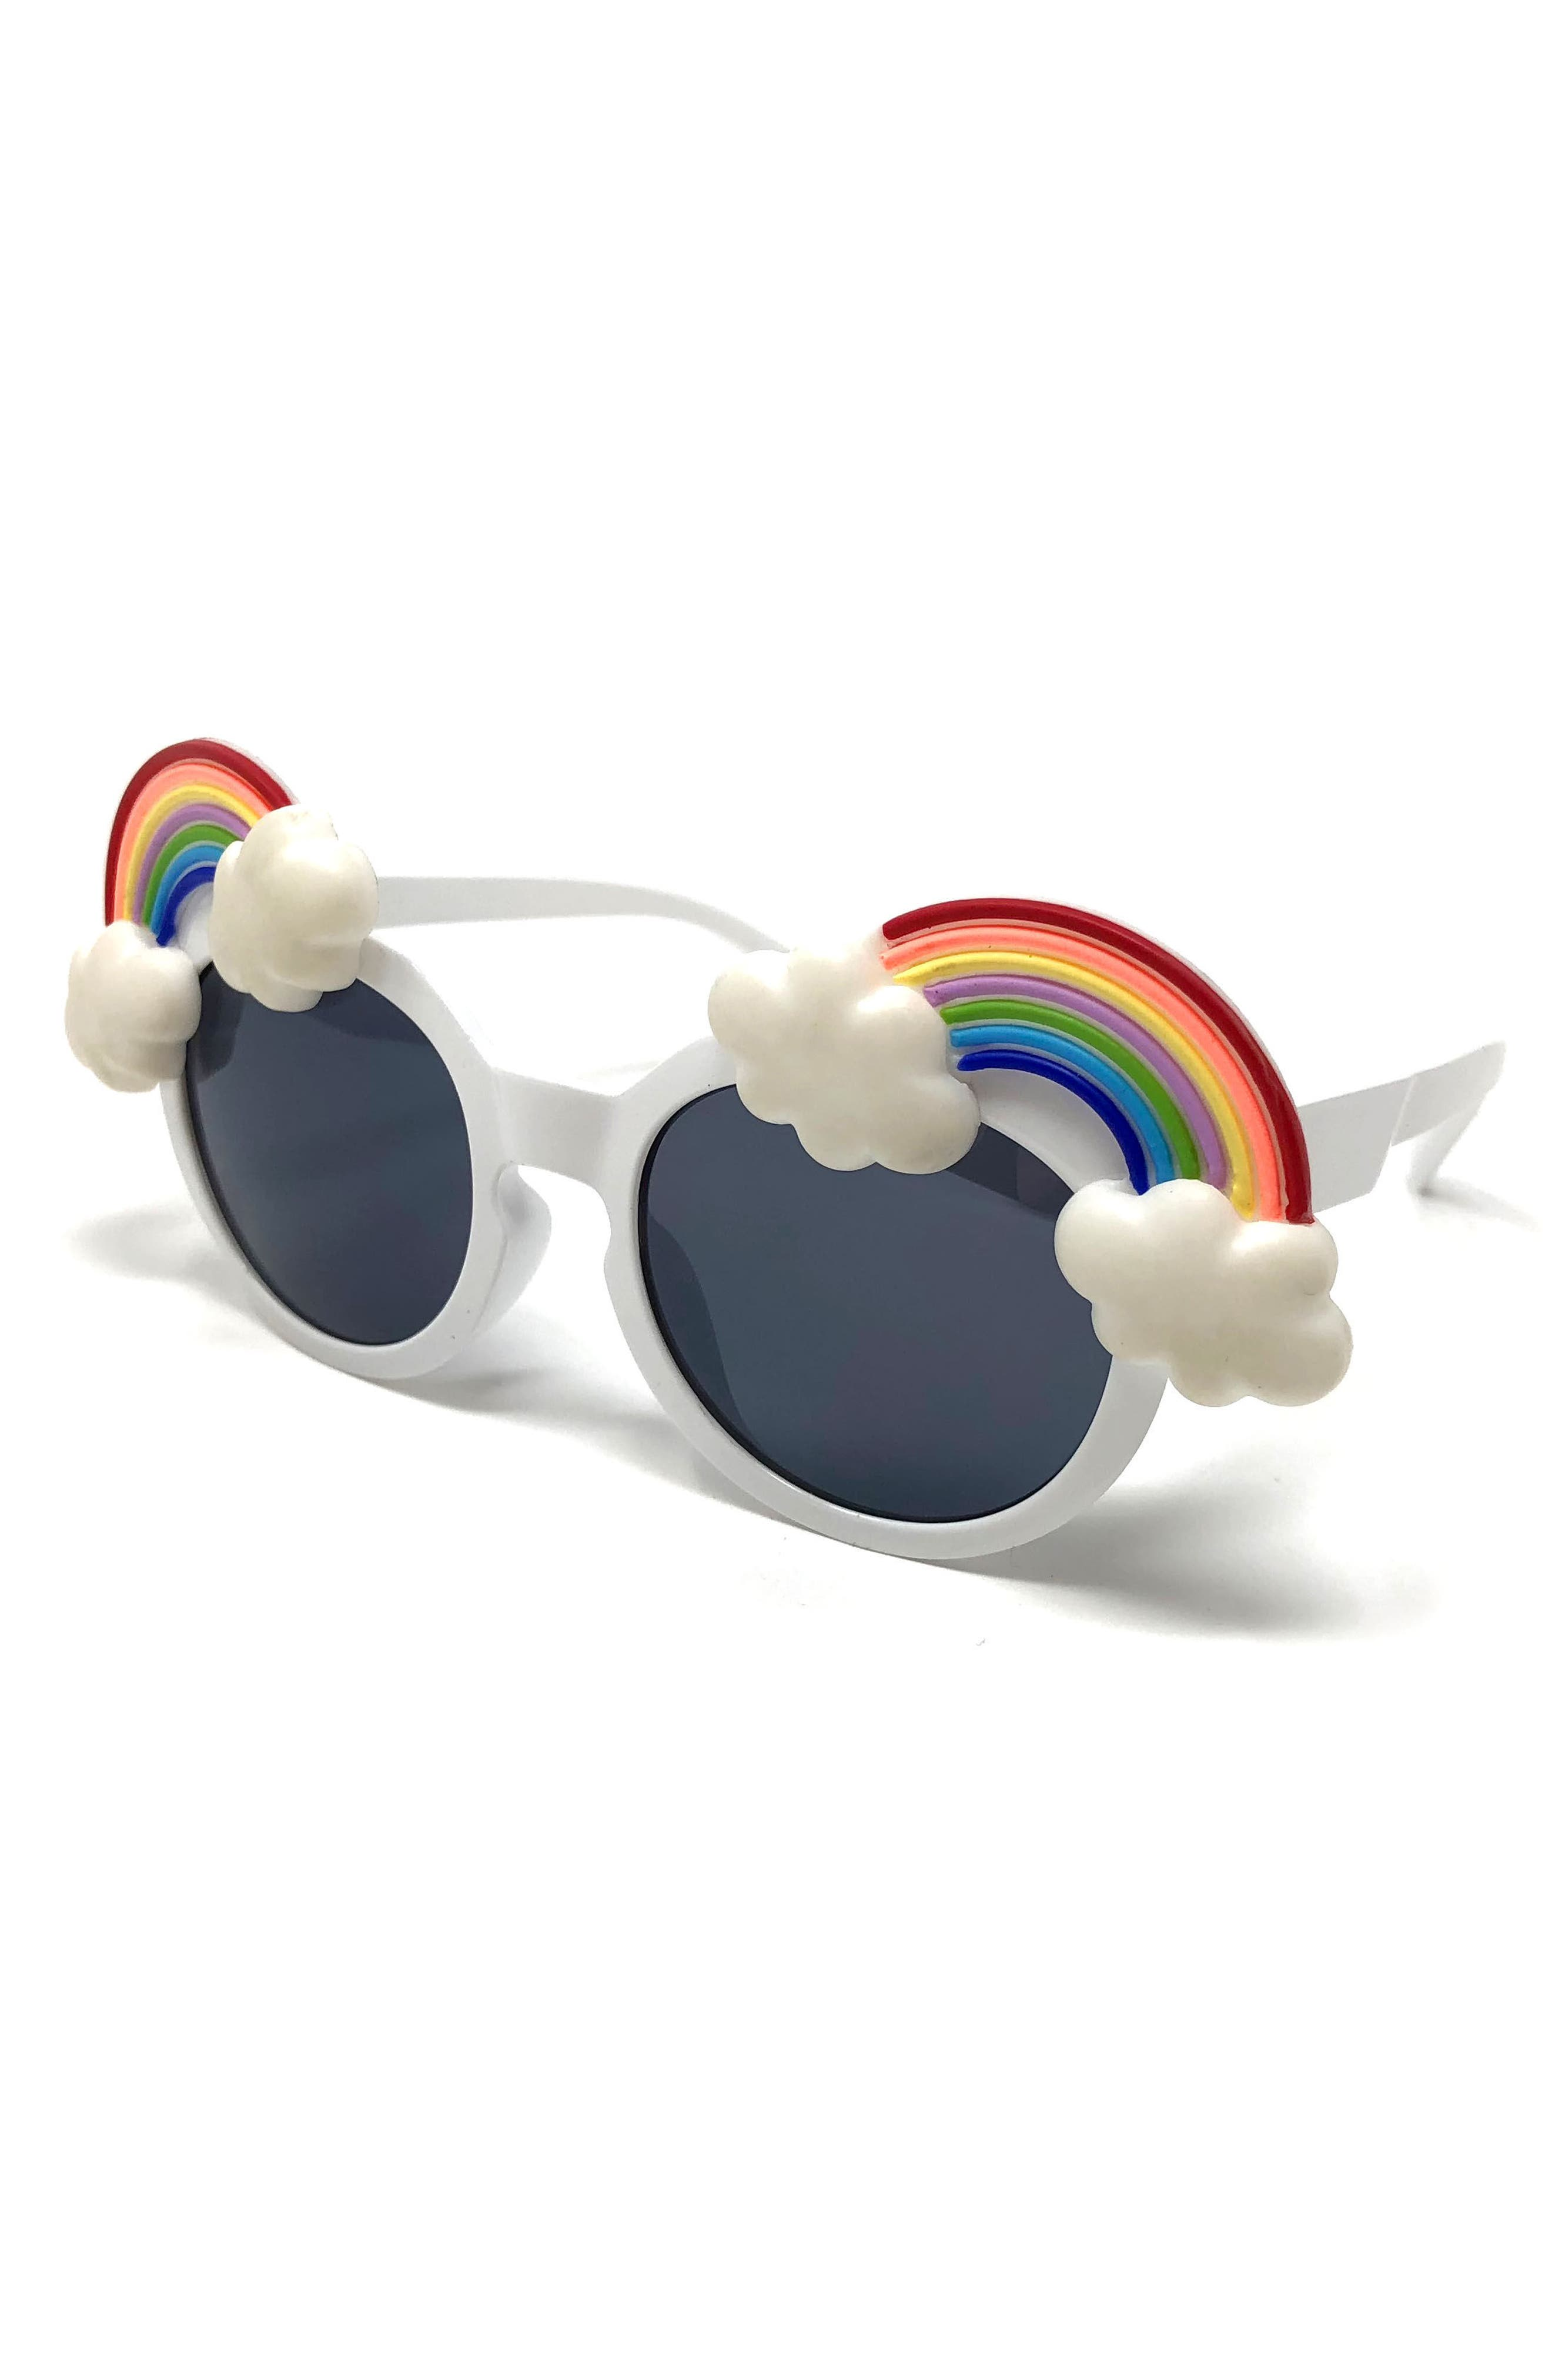 Small Round Rainbow Sunglasses,                             Alternate thumbnail 3, color,                             White/Rainbow